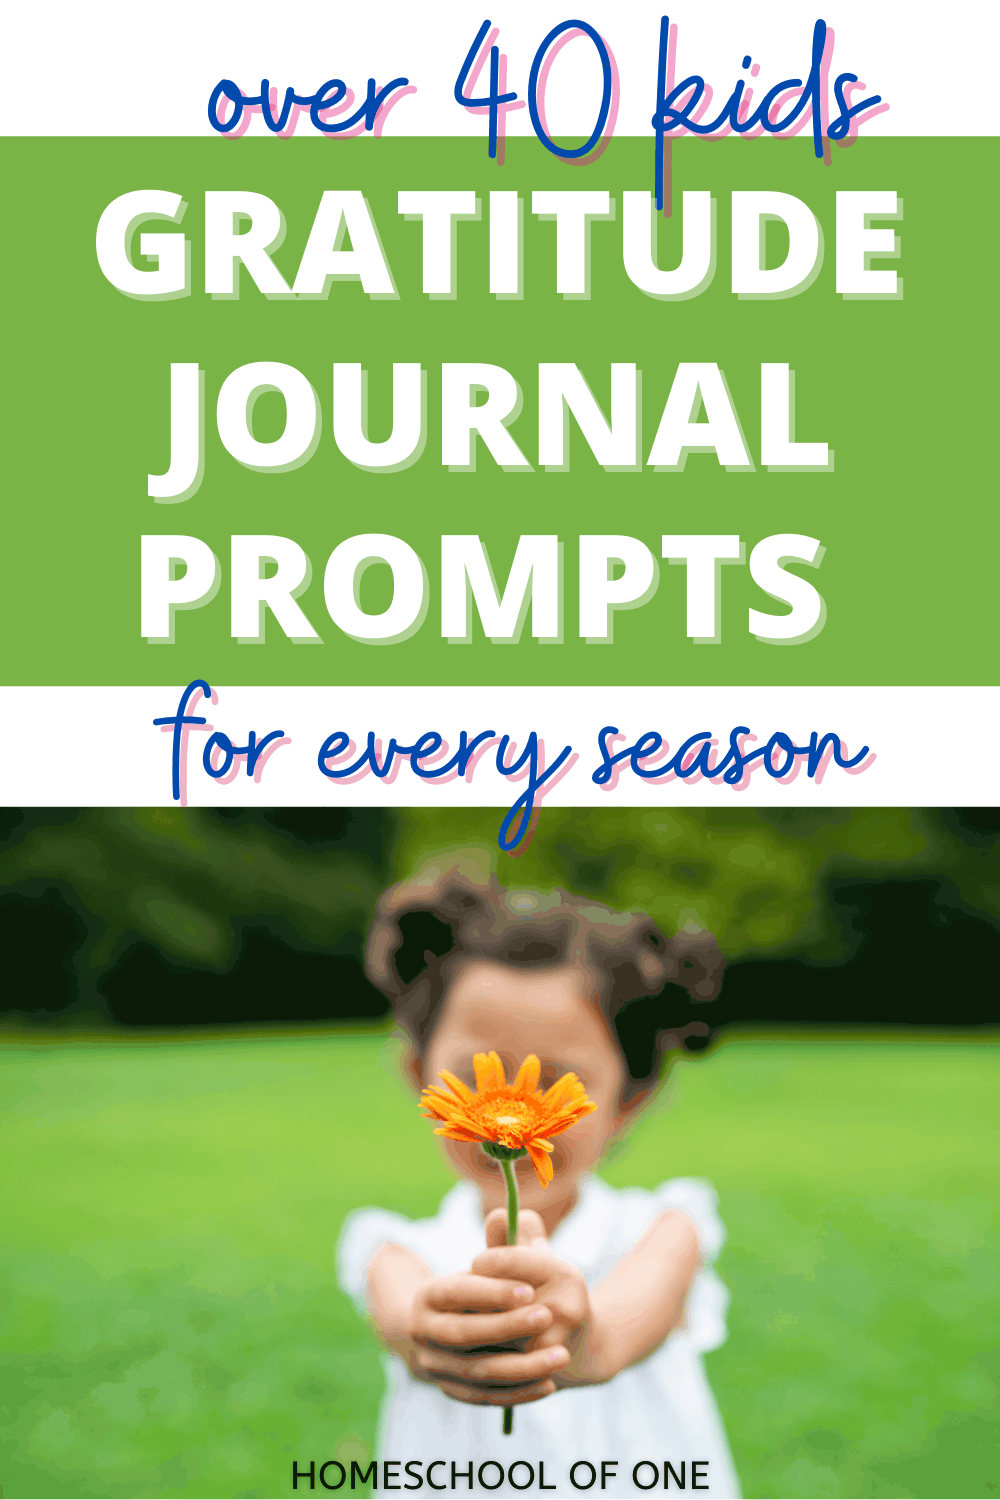 Over 40 gratitude journal prompts for kids. Encourage thanks all year round with ideas for Halloween, Thanksgiving, Christmas, New Years, Valentines, Easter and Summer. #gratitude #journalprompts #writingprompts